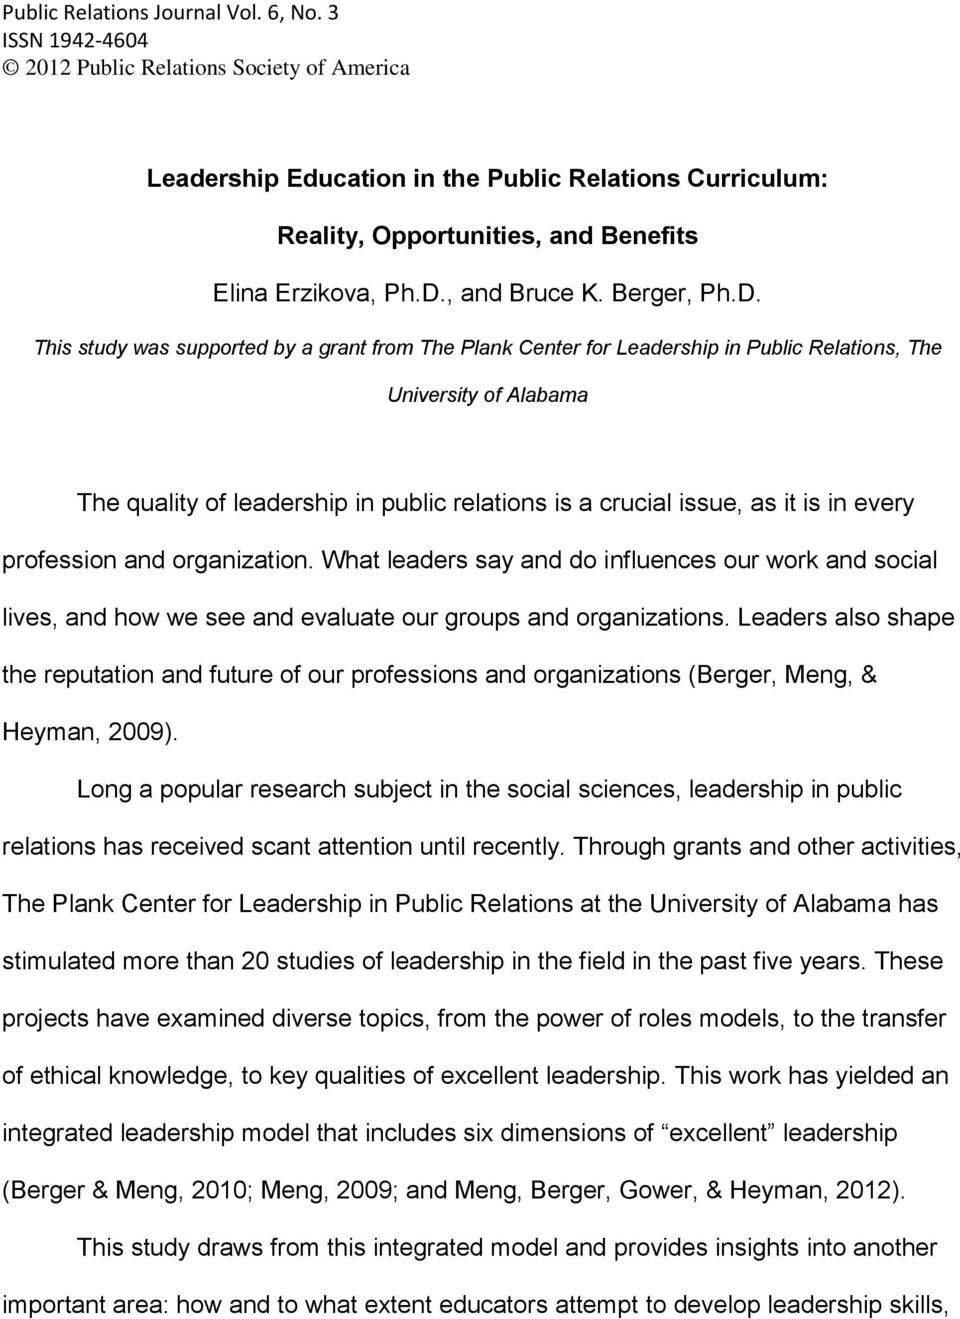 D. This study was supported by a grant from The Plank Center for Leadership in Public Relations, The University of Alabama The quality of leadership in public relations is a crucial issue, as it is